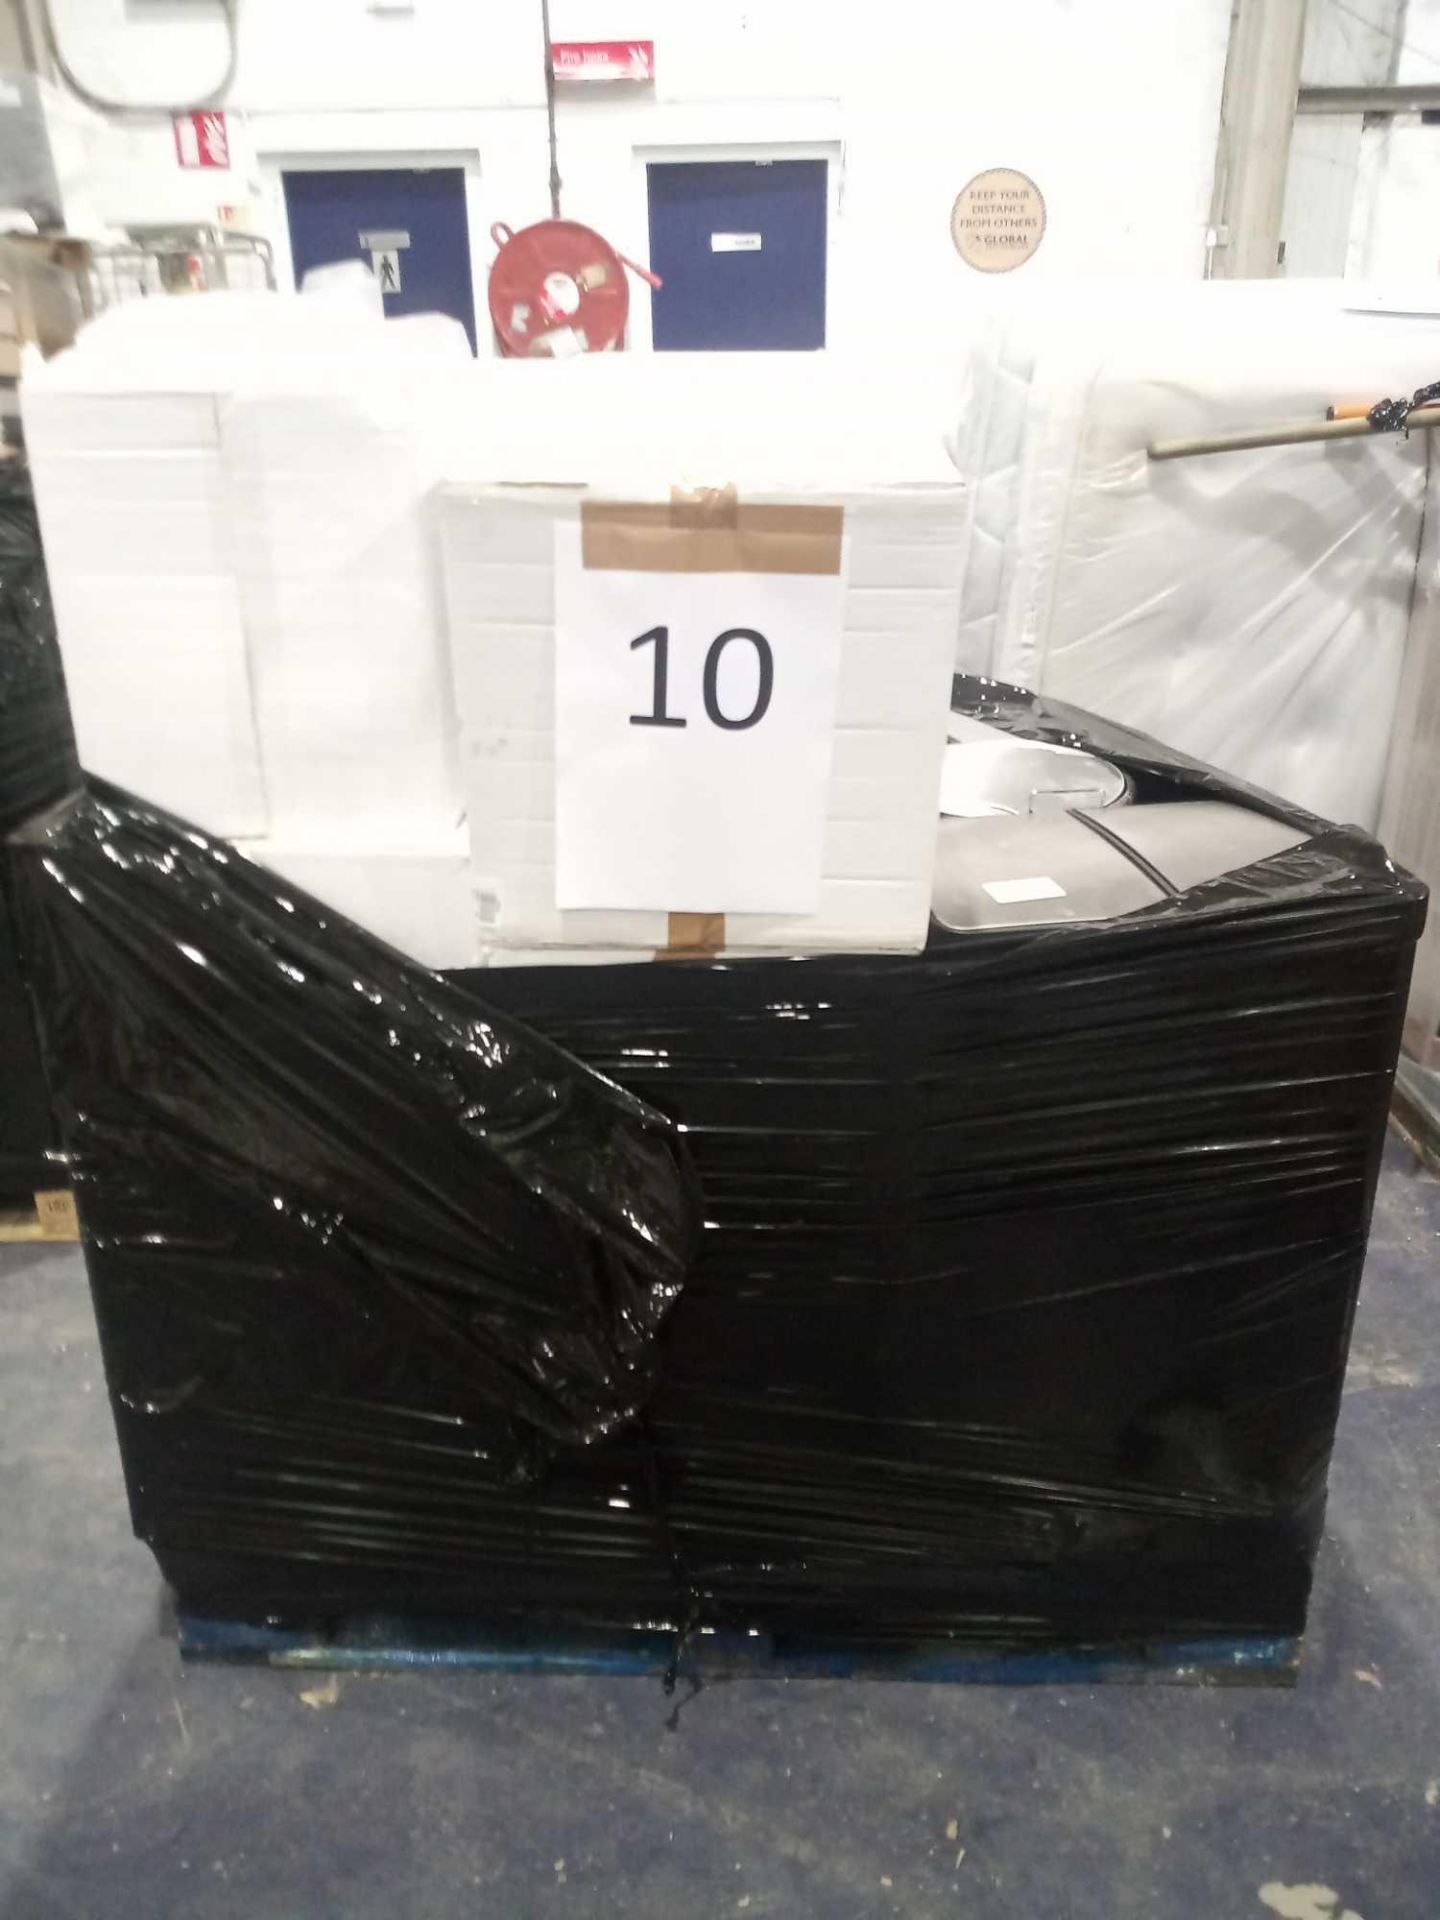 Pallet To Include 11 Boxed And Unboxed John Lewis Push Top Bins, 2-Section Pedal Push Bins In Assort